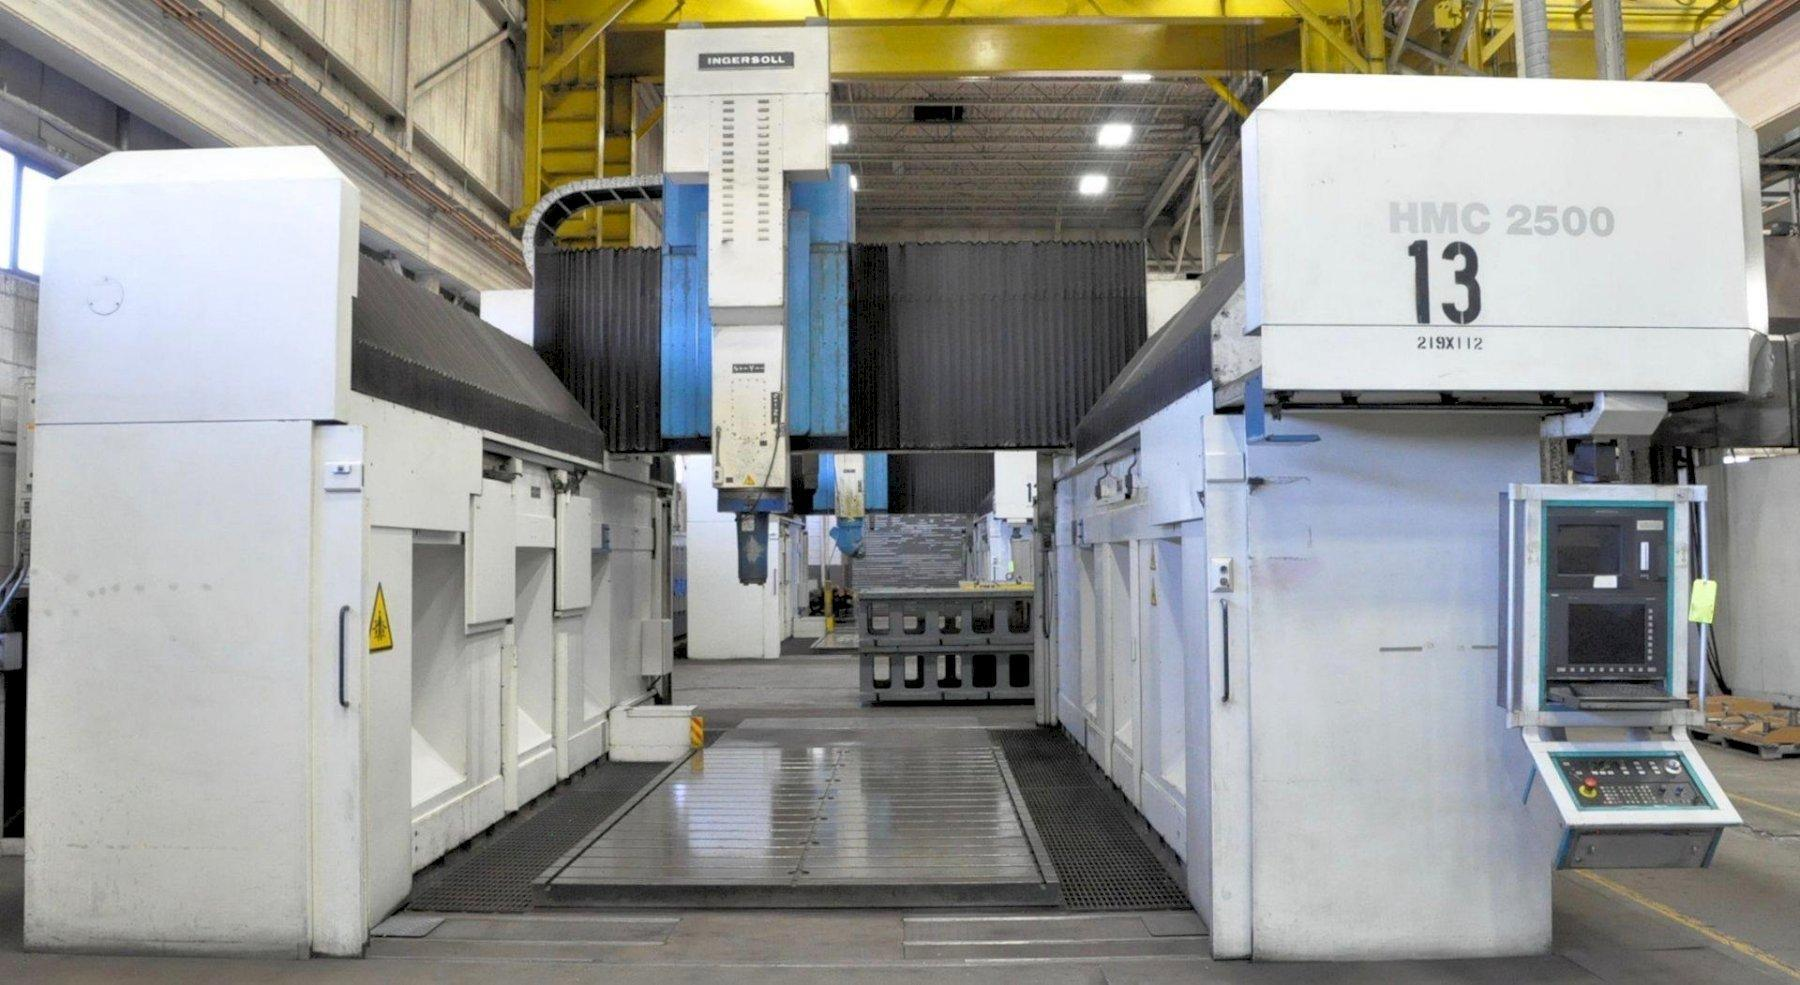 "ngersoll Model HMC-2500, 5-Axis Gantry Type High Speed CNC Vertical Machining Center, 197"" x 98"" Table Size, 226"" X-Axis, 111"" Y-Axis, 59"" Z-Axis, 67"" Height Under Spindle, Automatic Spindle Changer, Siemens Sinumerik 840D CNC Controller, Oil Cooler, Chip Conveyor, 2001, (2) Avail"